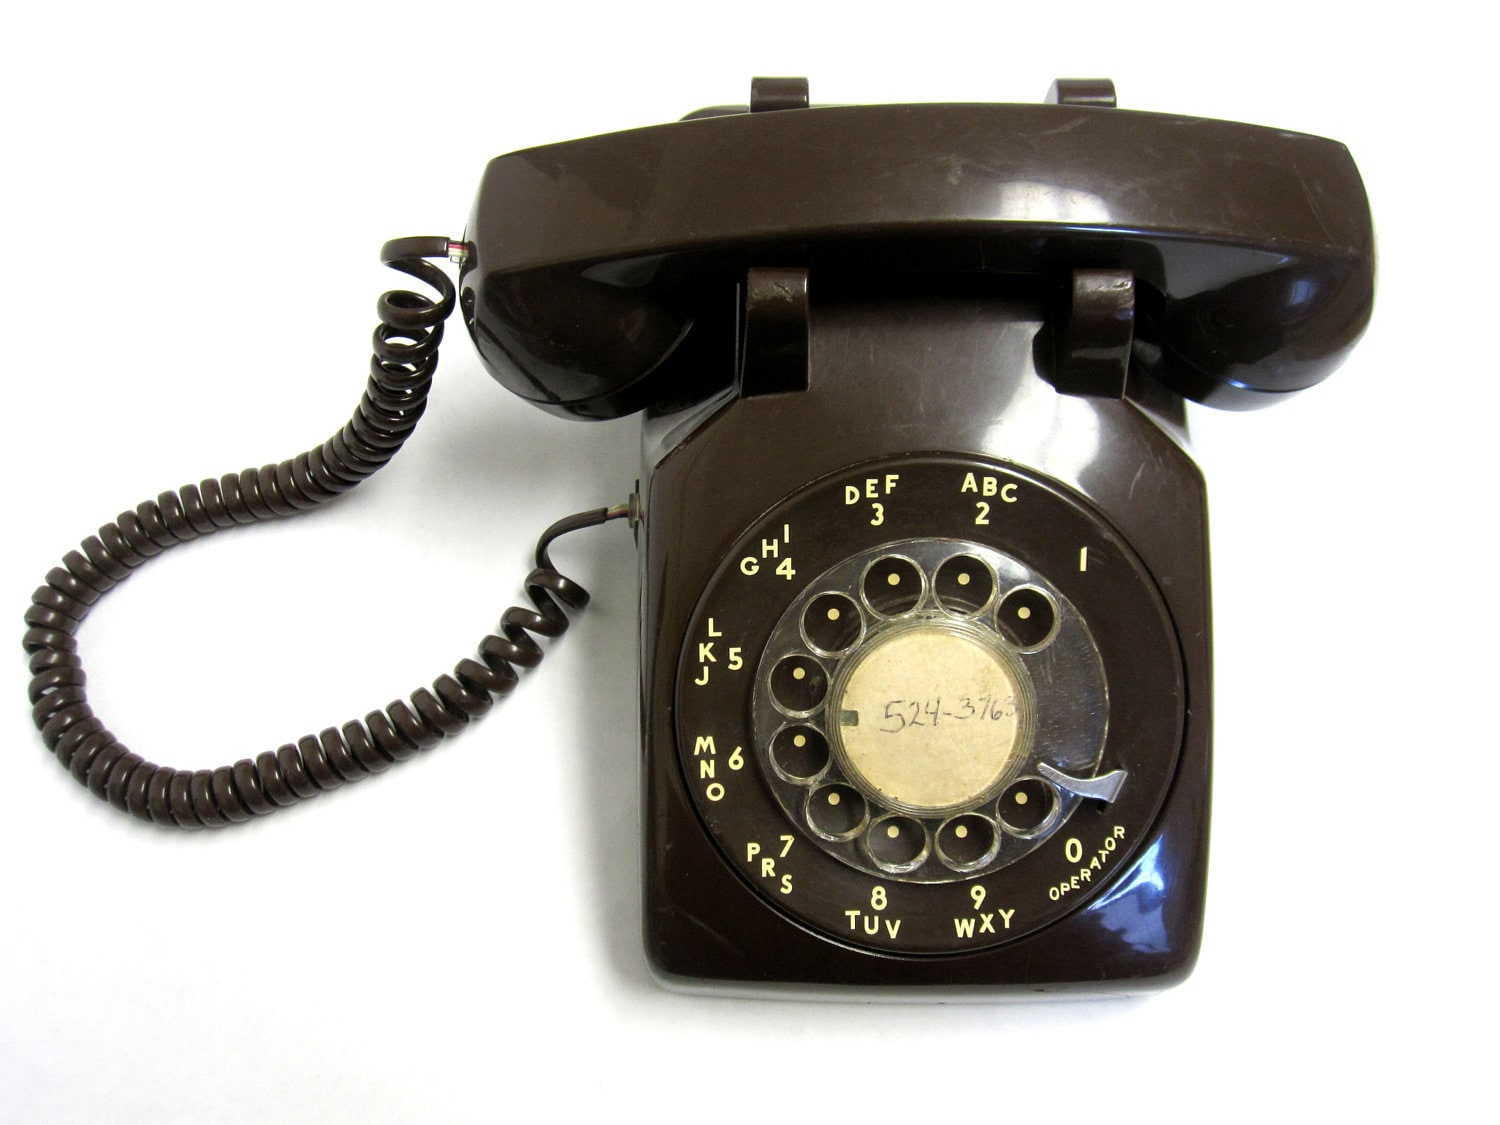 Telephone Rotary Dial Chocolate Brown 1970s Vintage Phone